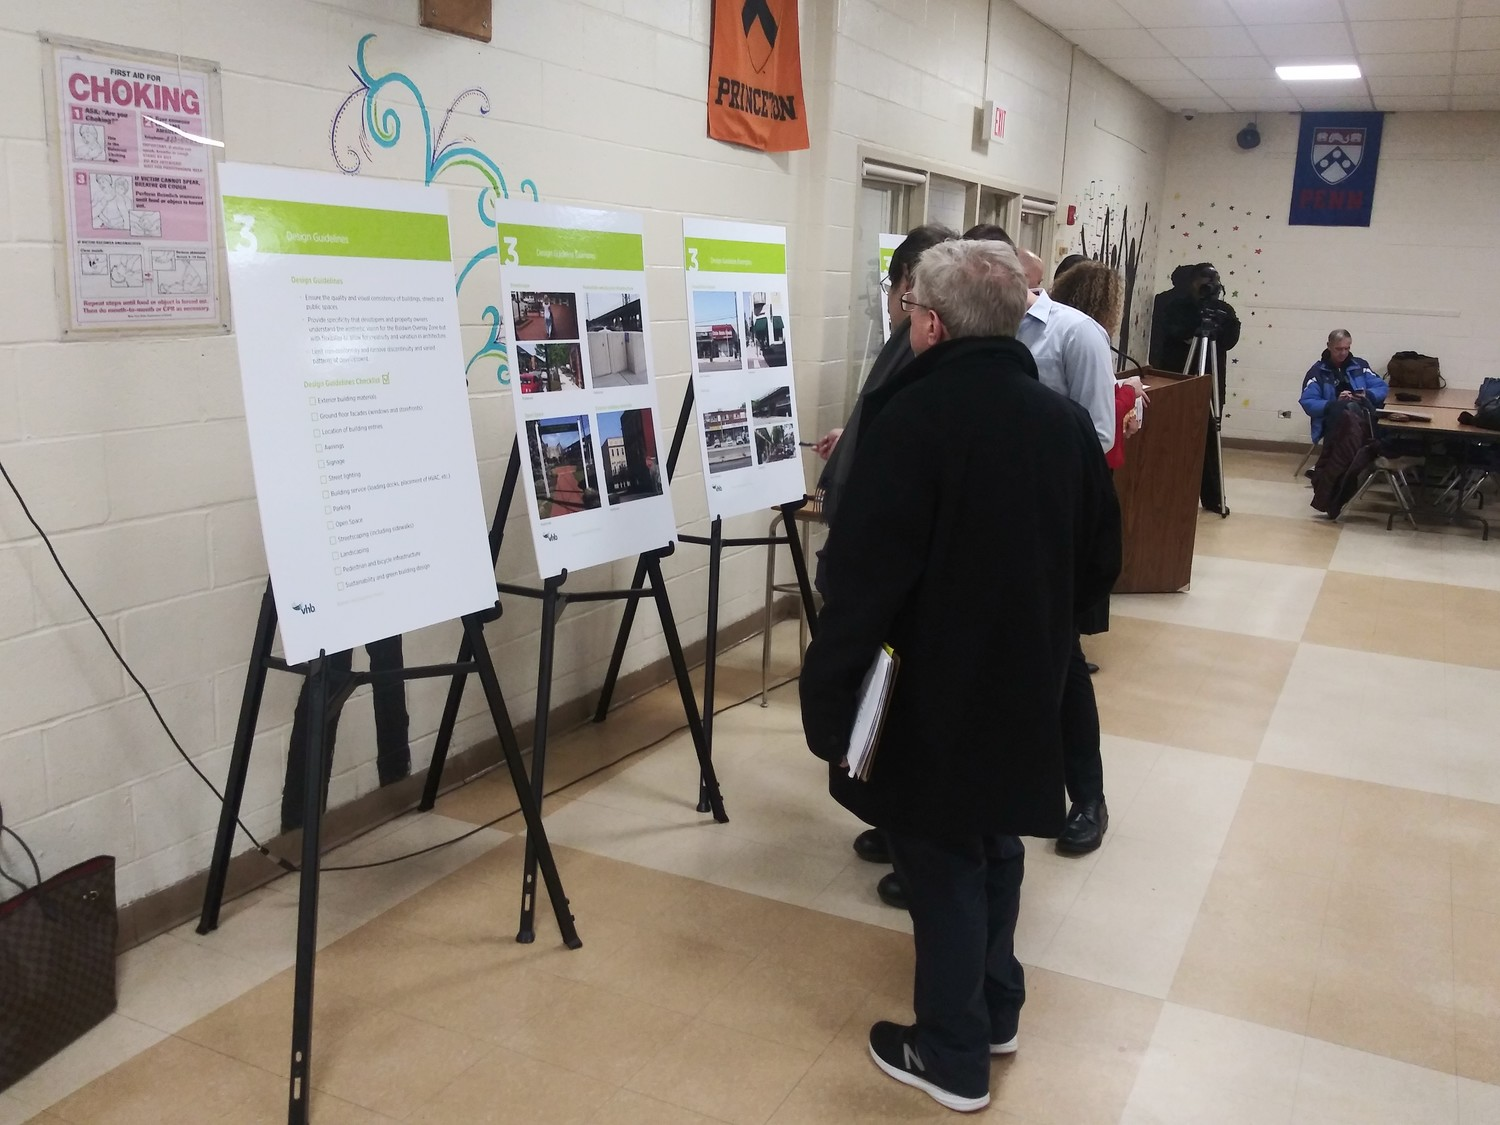 On Jan. 10, the Town of Hempstead unveiled parts of its plan to revitalize Baldwin, giving residents the opportunity to review the plan on poster boards set up in Baldwin Middle School.